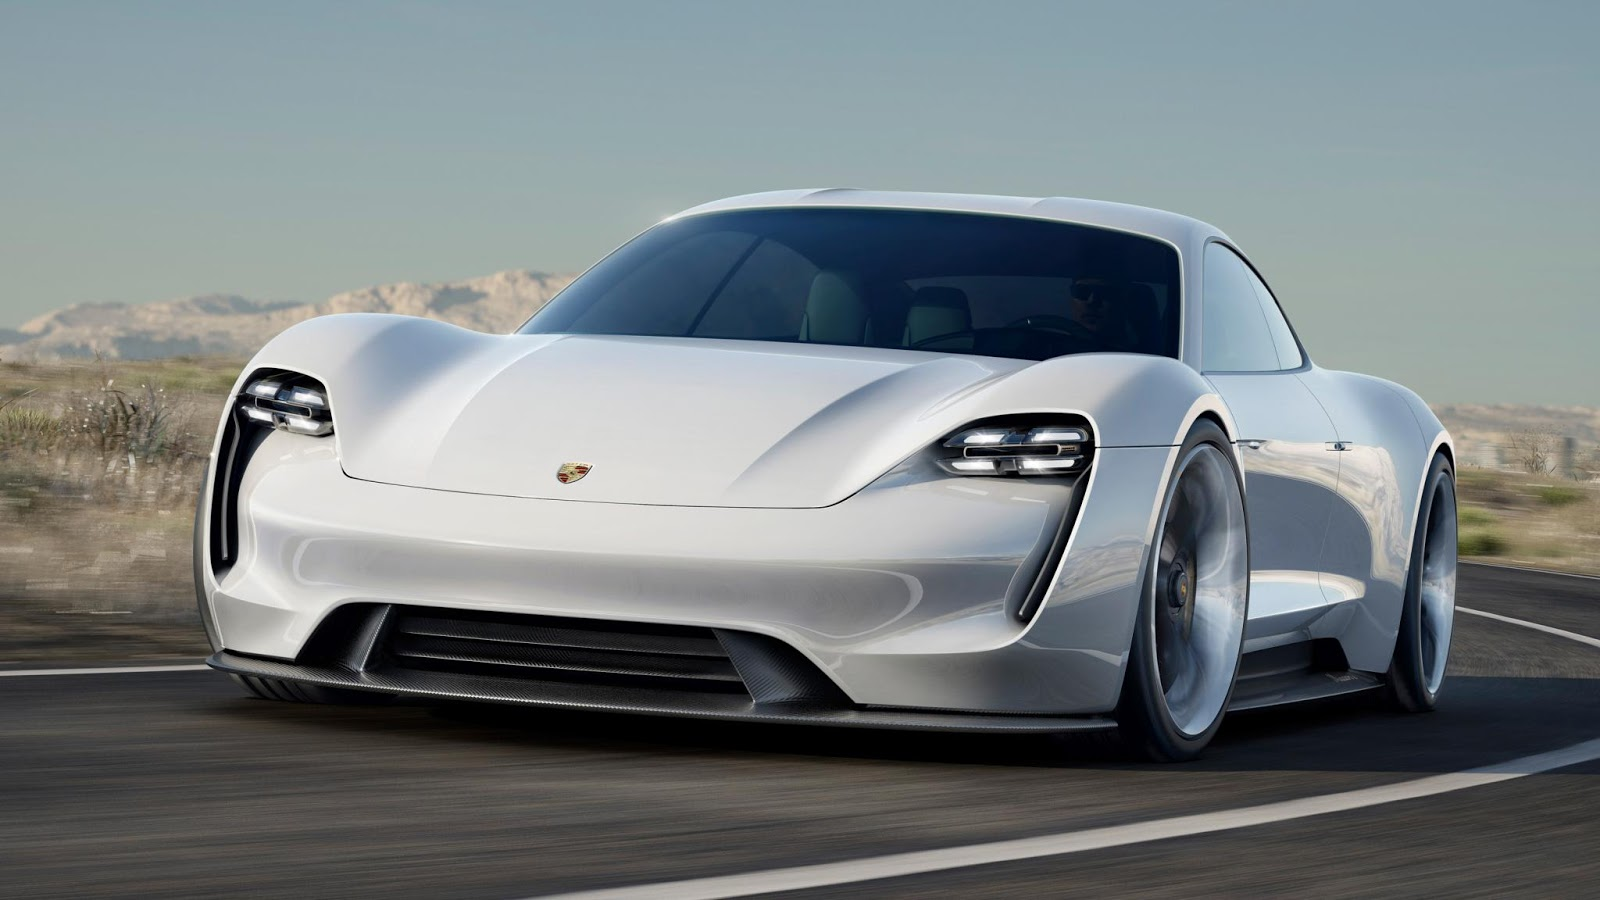 Awd Electric Car >> 2018 Porsche Mission E 600 Hp Awd Electric Vehicle Concept